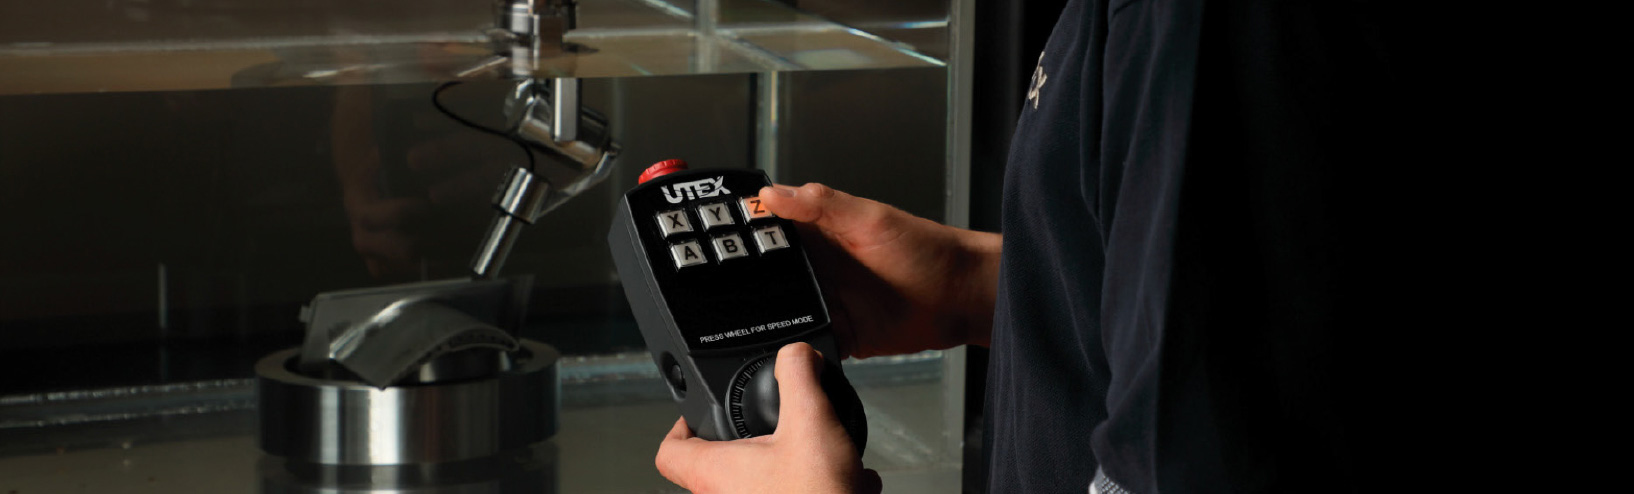 UTEX is here to help